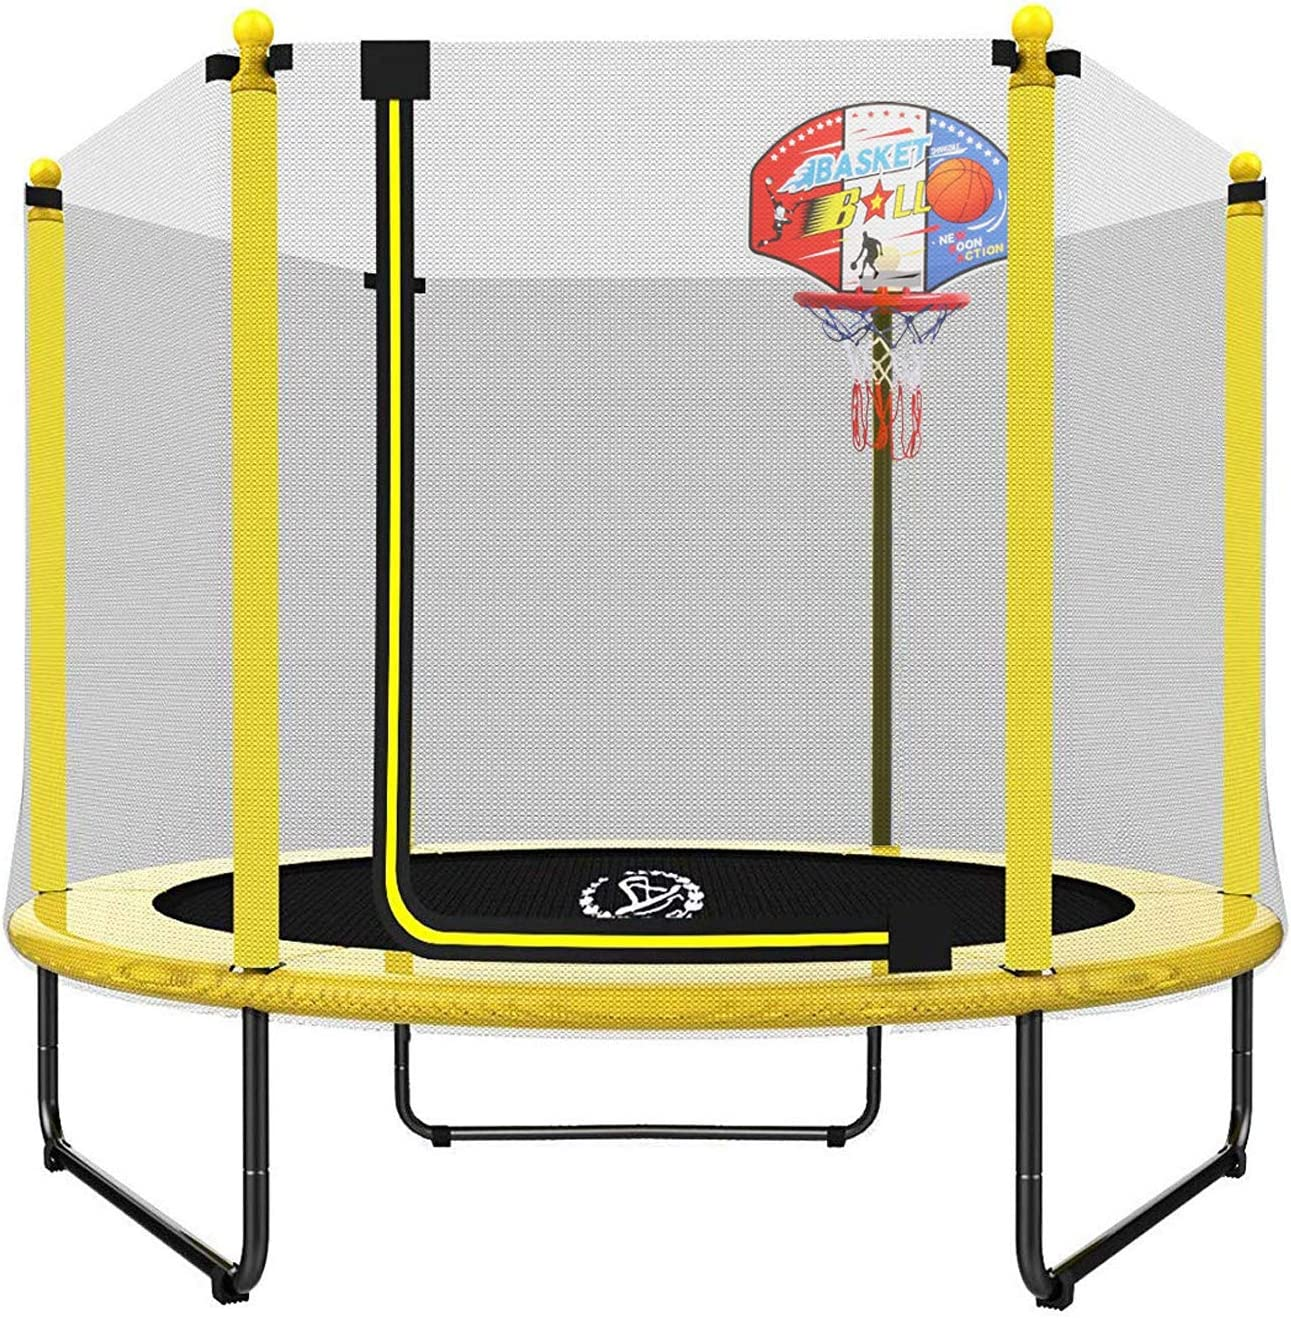 Langxun 60 Trampoline For Kids 5ft Outdoor Indoor Mini Toddler Trampoline With Enclosure Basketball Hoop Birthday Gifts For Kids Gifts For Boy And Girl Baby Toddler Trampoline Toys